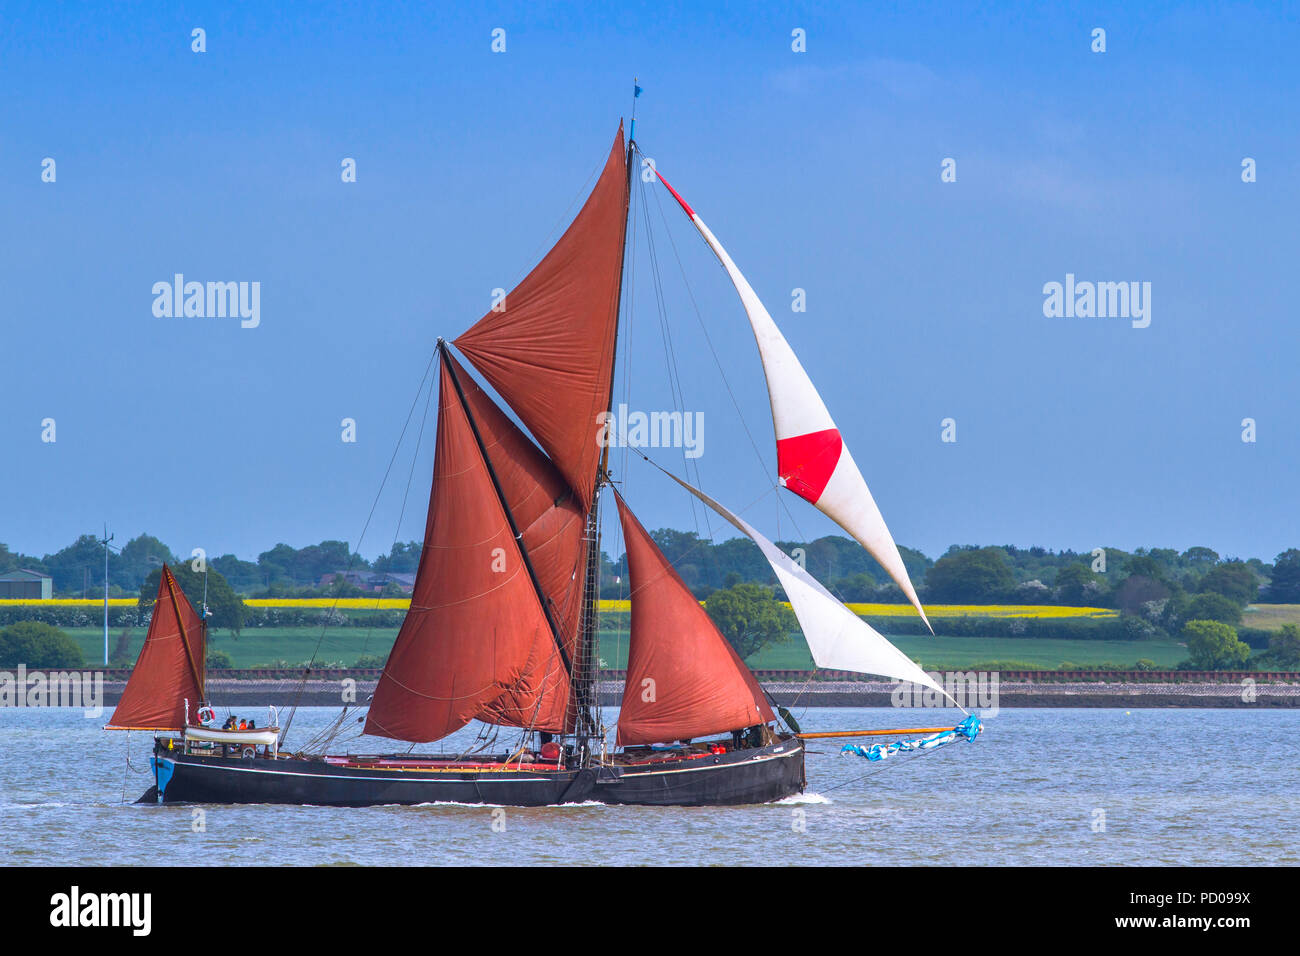 Thames Barge Adieu heads down the Blackwater estuary. - Stock Image